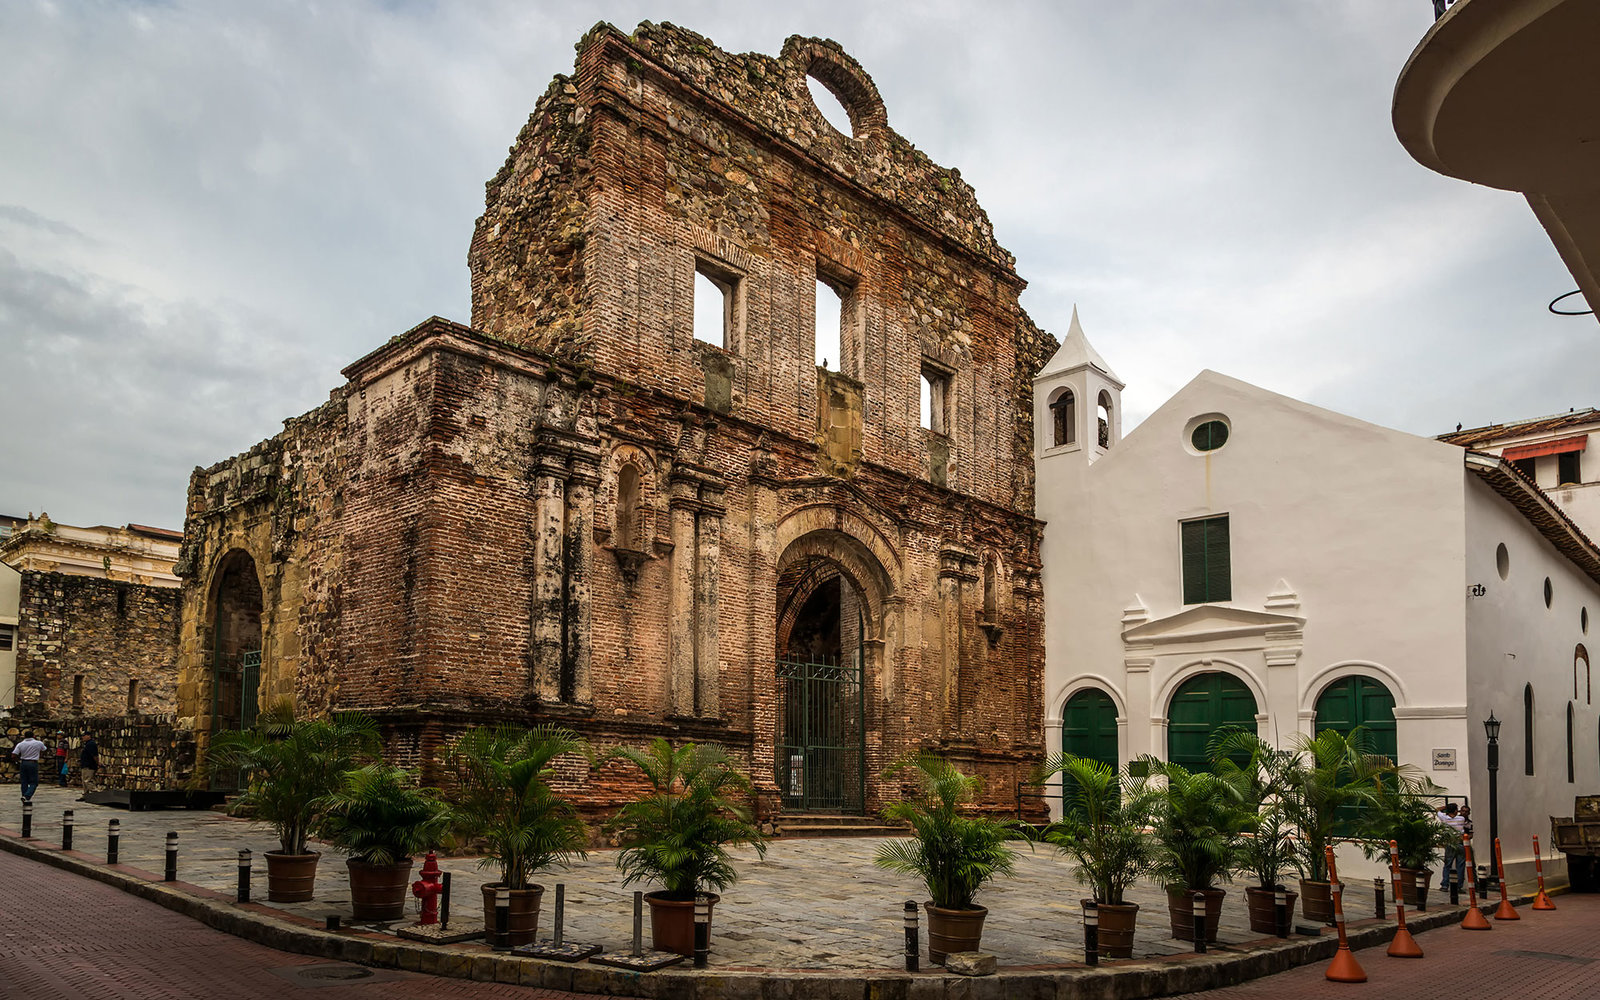 Panama City, Panama - November 20th 2013 - Old building in the old town of Panama City in Panama, Central America; Shutterstock ID 332193992